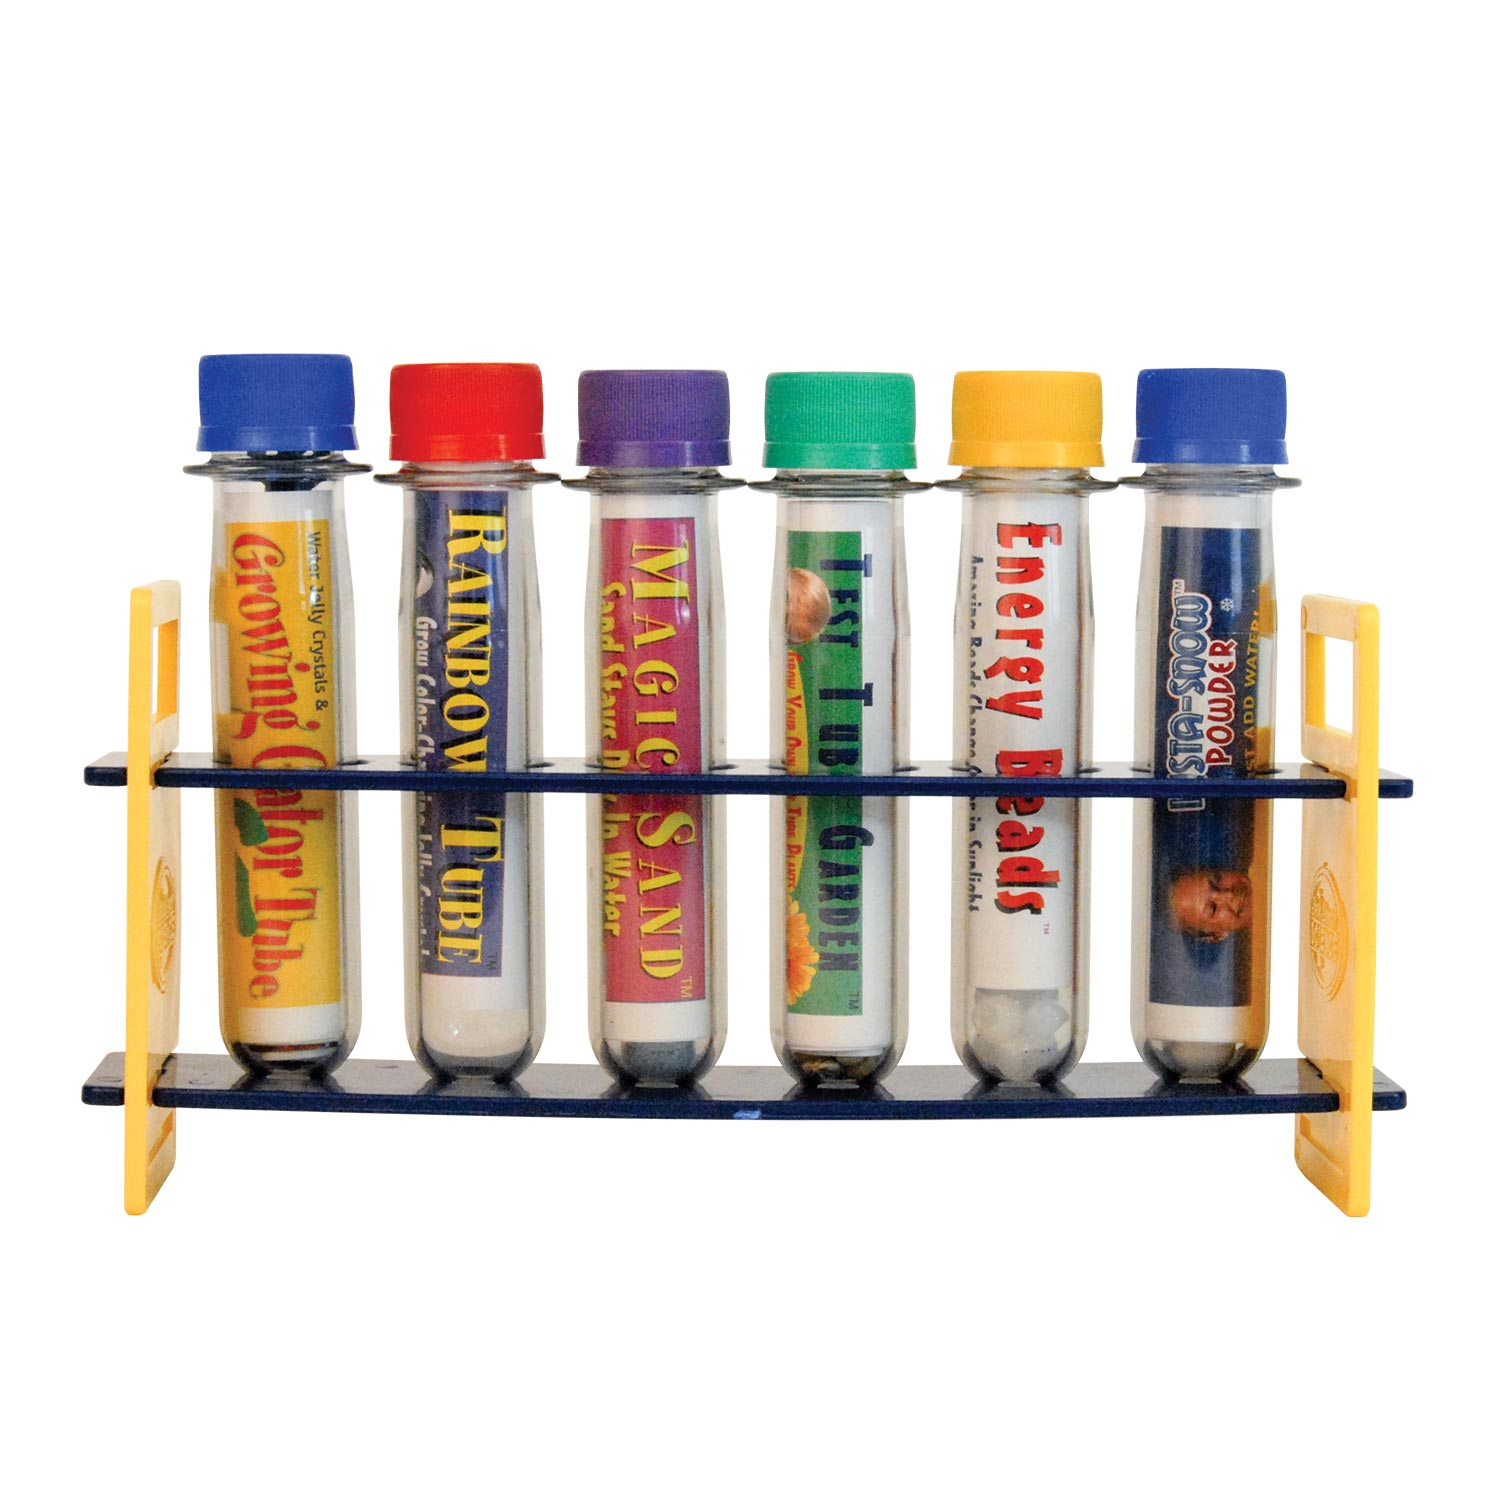 Six Test Tube Experiments in a Rack